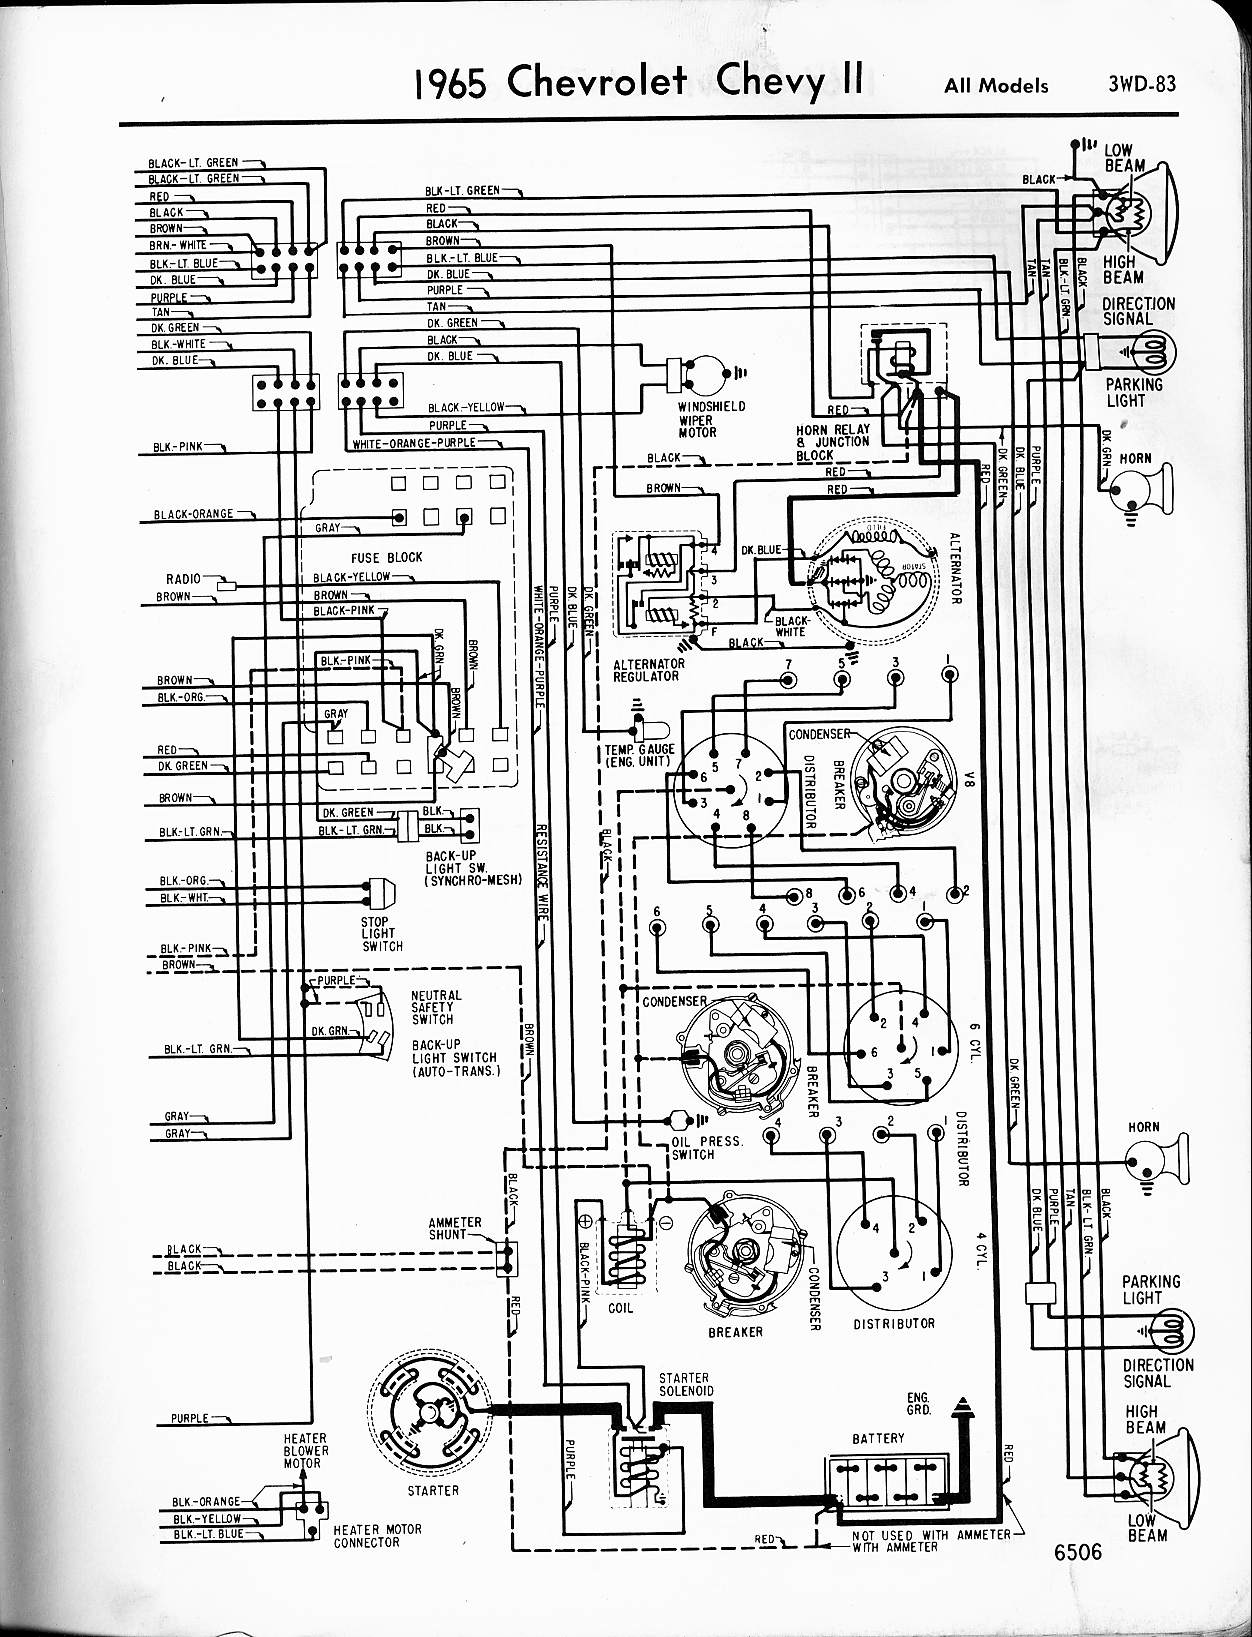 MWireChev65_3WD 083 1966 corvette wiring diagram 1966 corvette headlight wiring 1966 ford truck wiring diagram at eliteediting.co